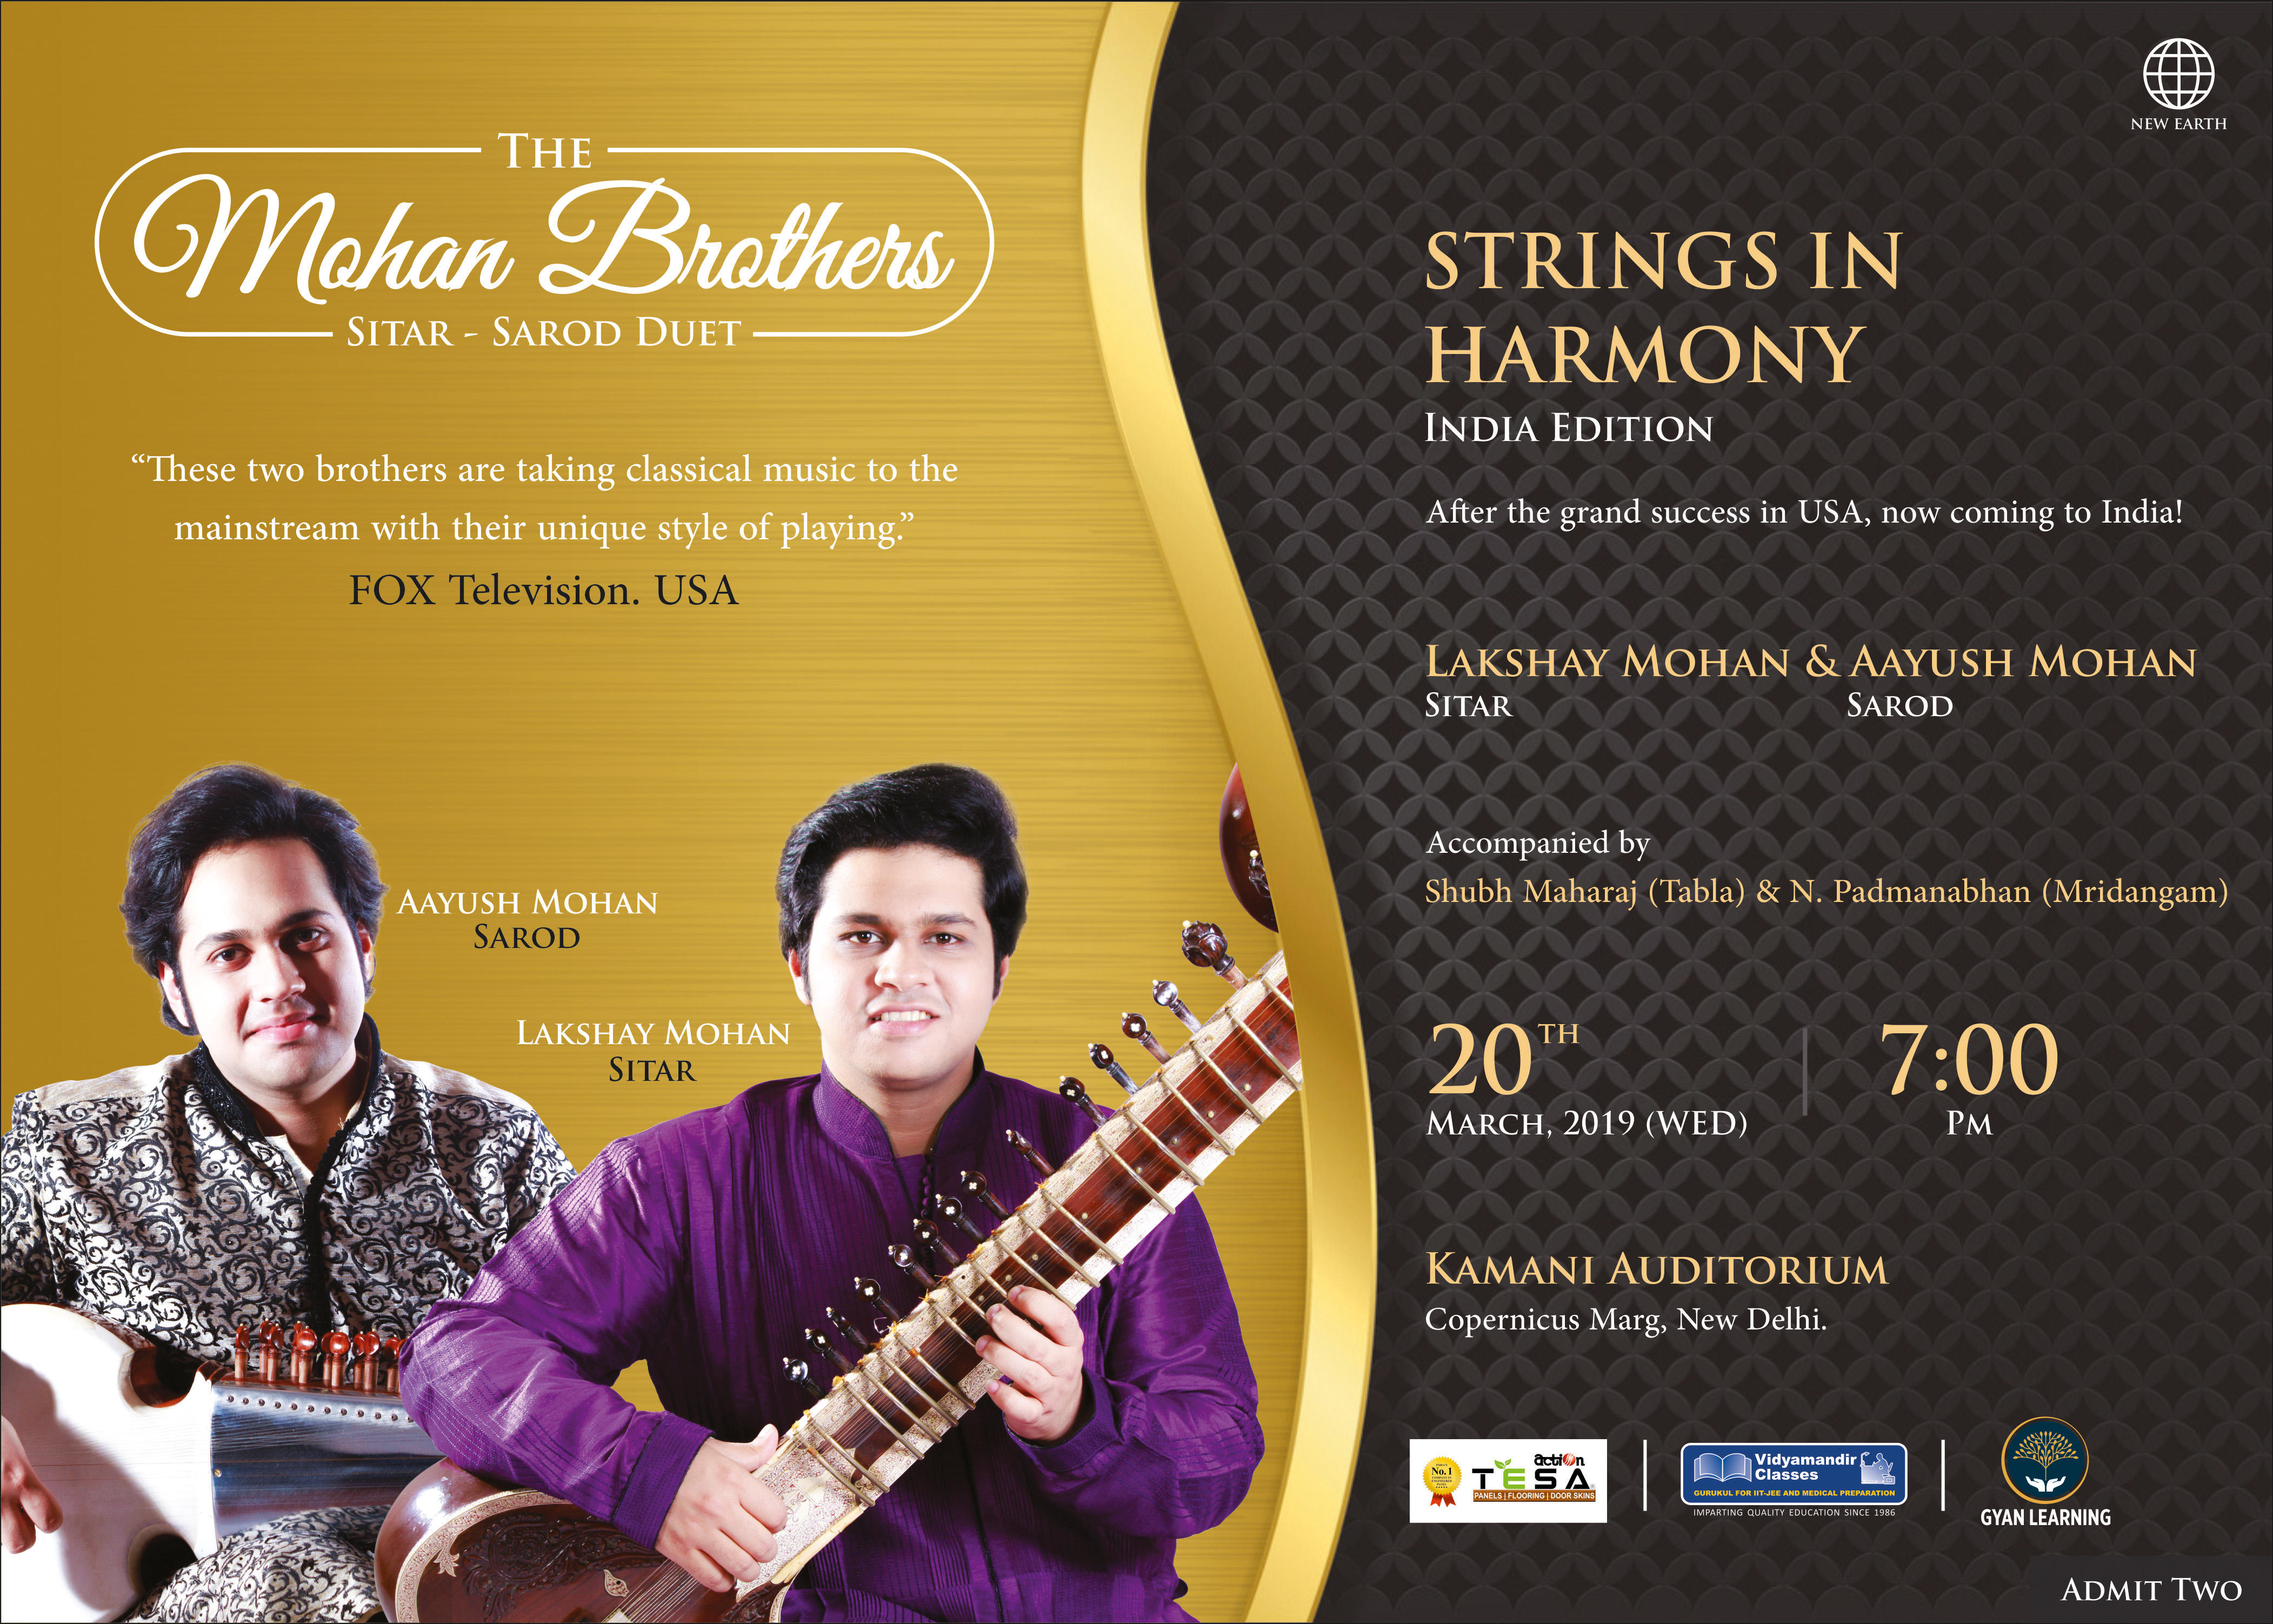 The Mohan Brothers SITAR - SAROD DUET